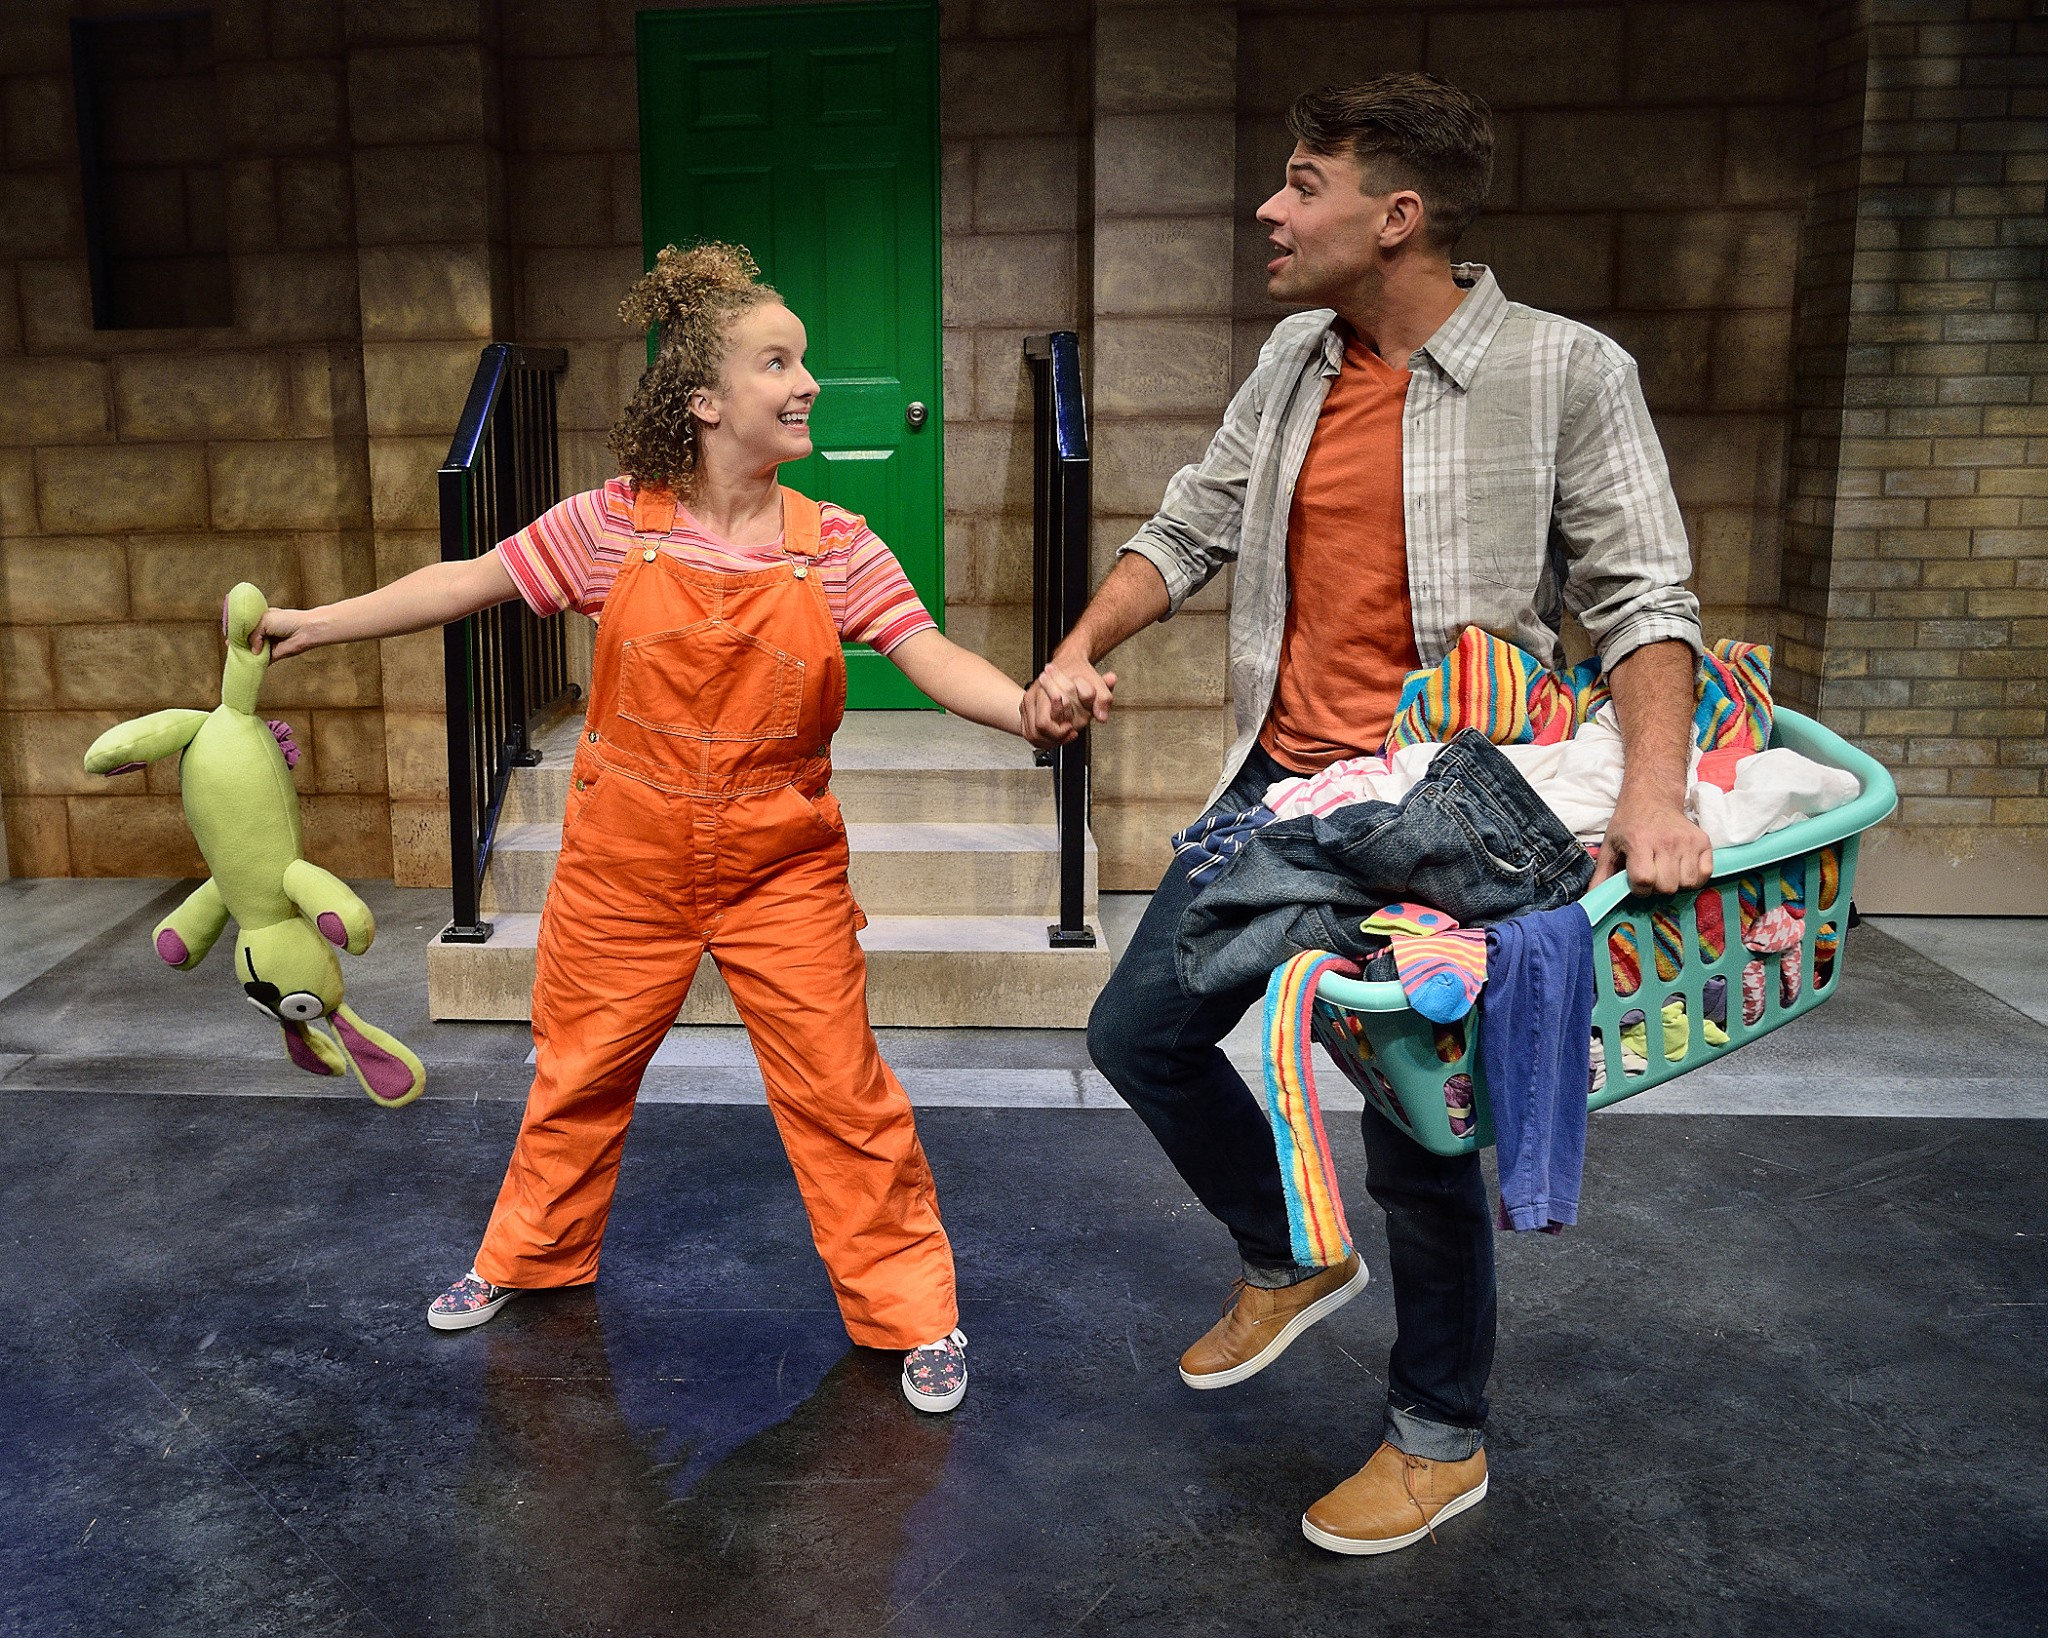 Trixie in Knuffle Bunny at Adventure Theatre MTC.  Directed by Nick Olcott, Costumes by Robert Croghan, Scenic Design by Douglas Clarke